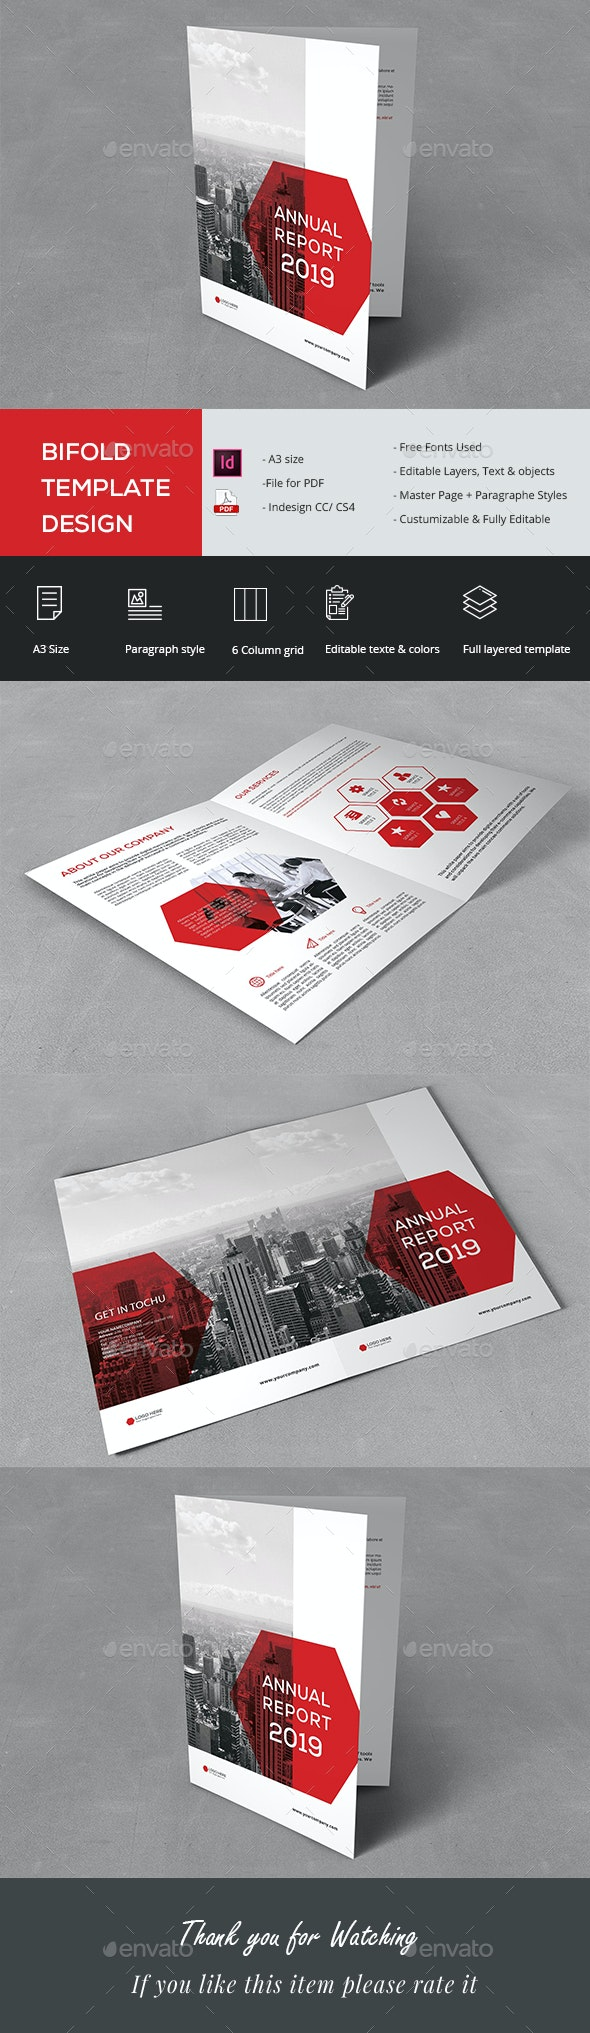 Stylish Bifold Template - Corporate Flyers